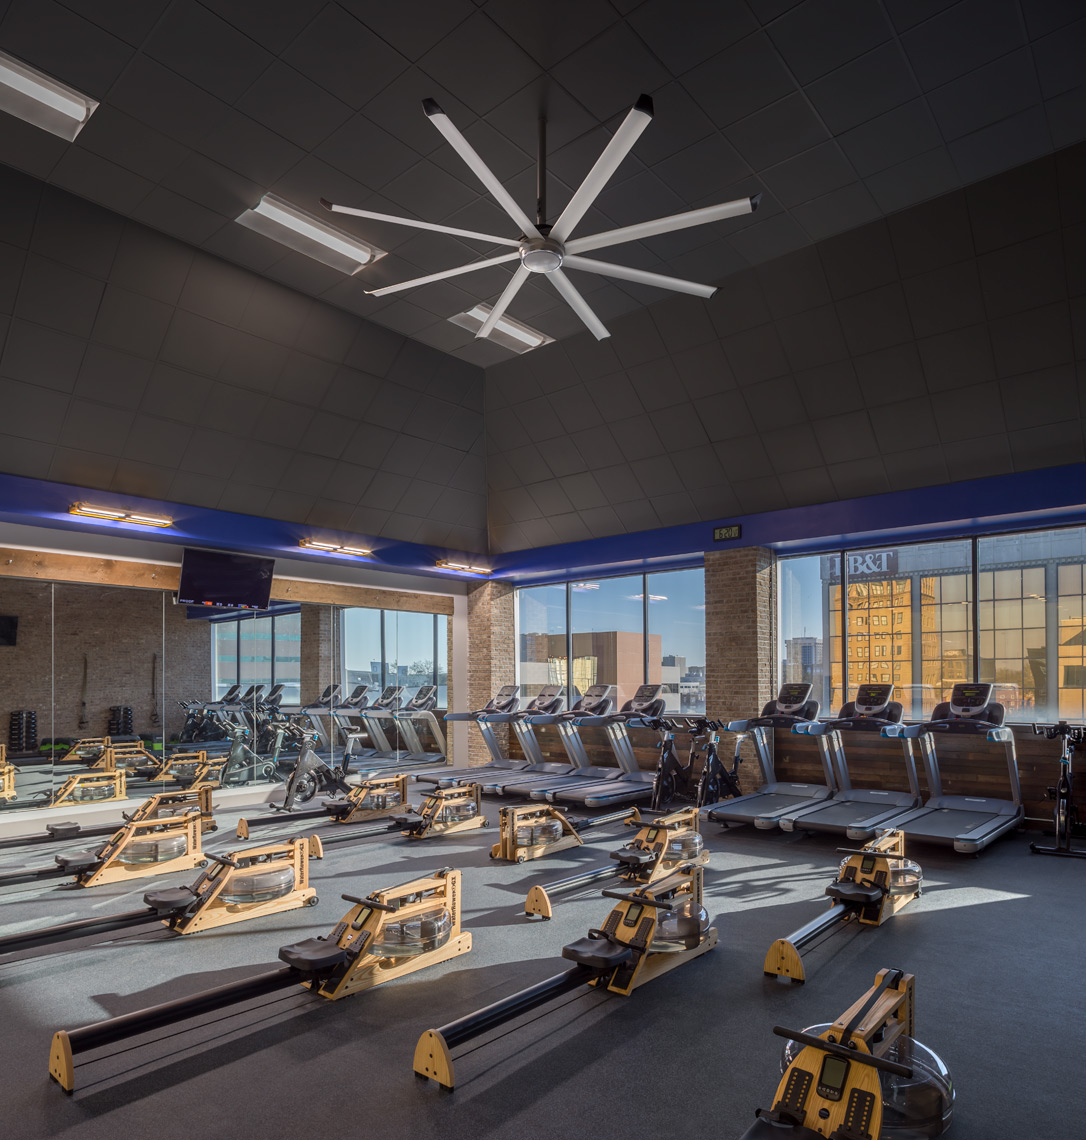 Rowing gym and treadmills at proof fitness with lighting application